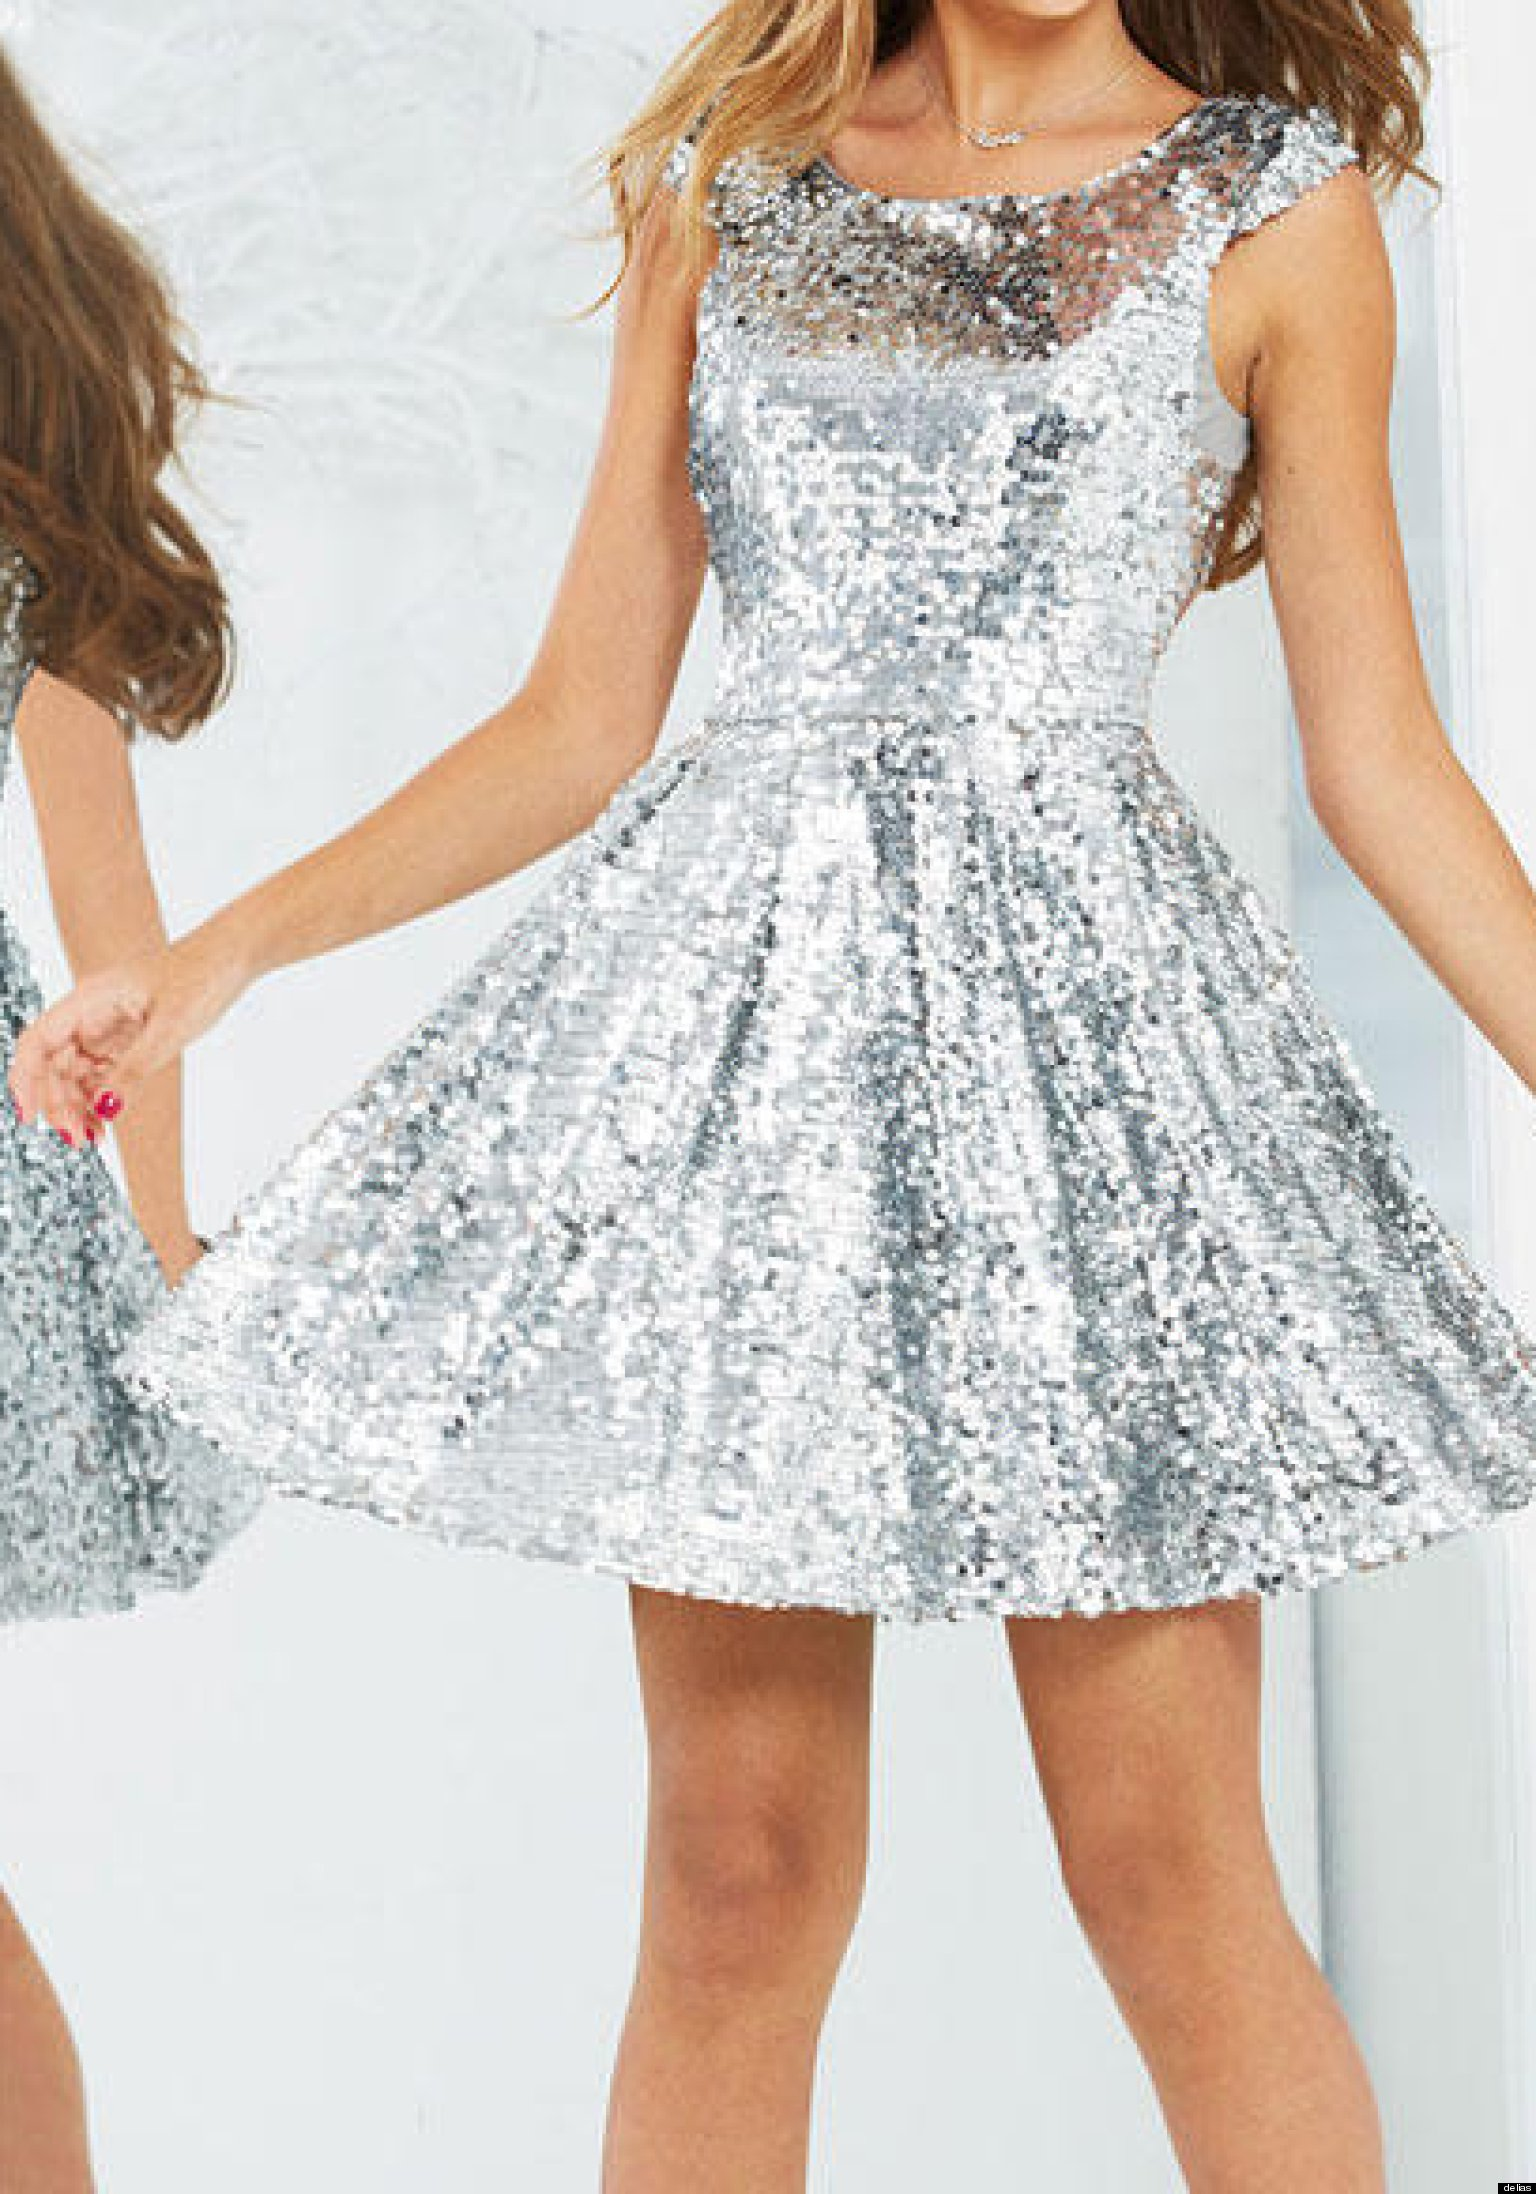 New Year S Eve Dresses 10 Sparkly Outfits To Wear When You Ring In 2017 Huffpost